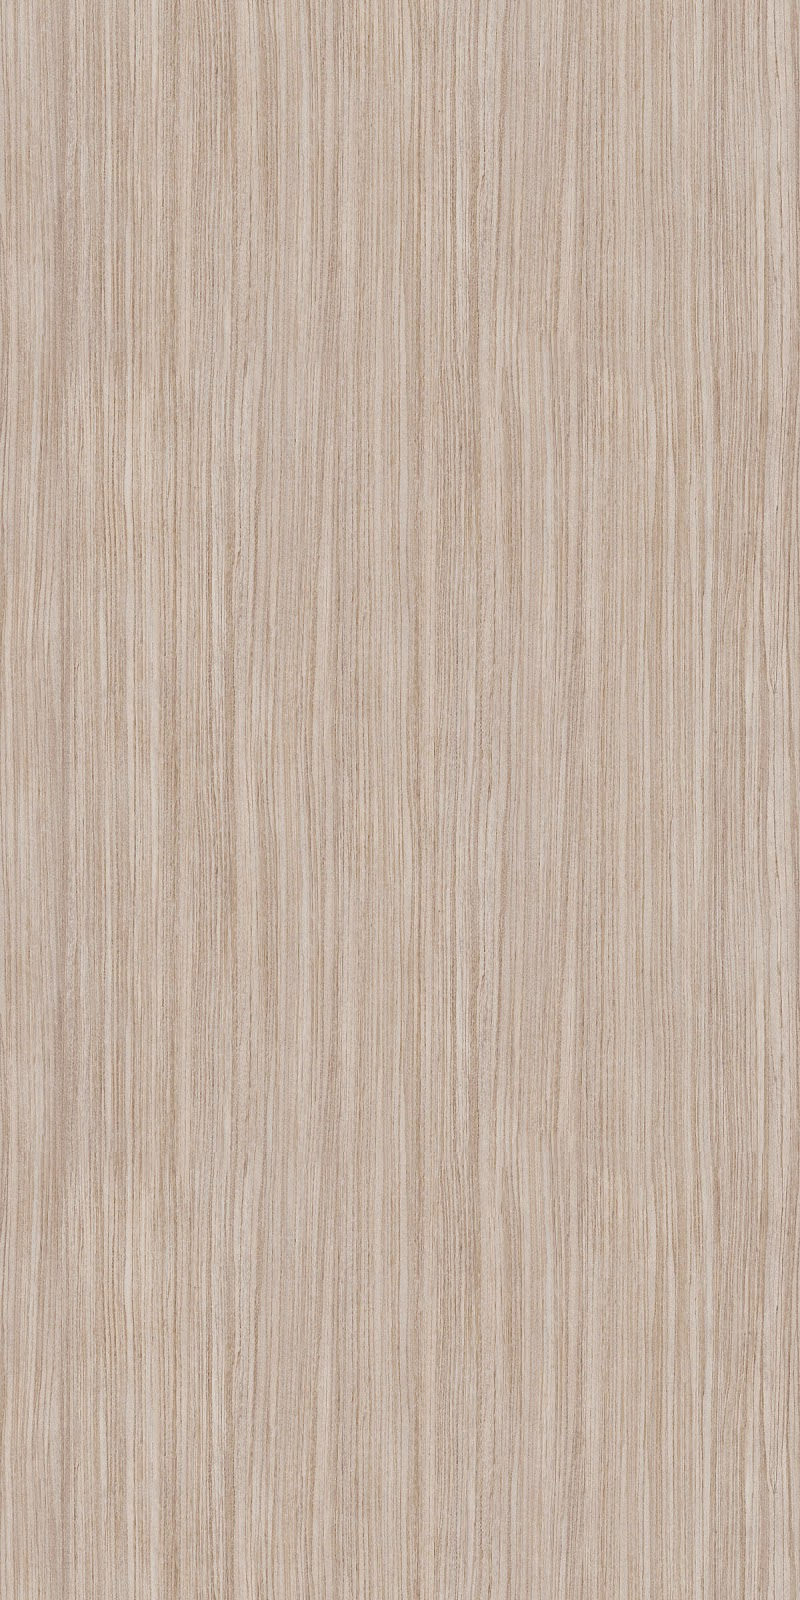 seamless fine wood laminate texture maps texturise free seamless textures with maps. Black Bedroom Furniture Sets. Home Design Ideas